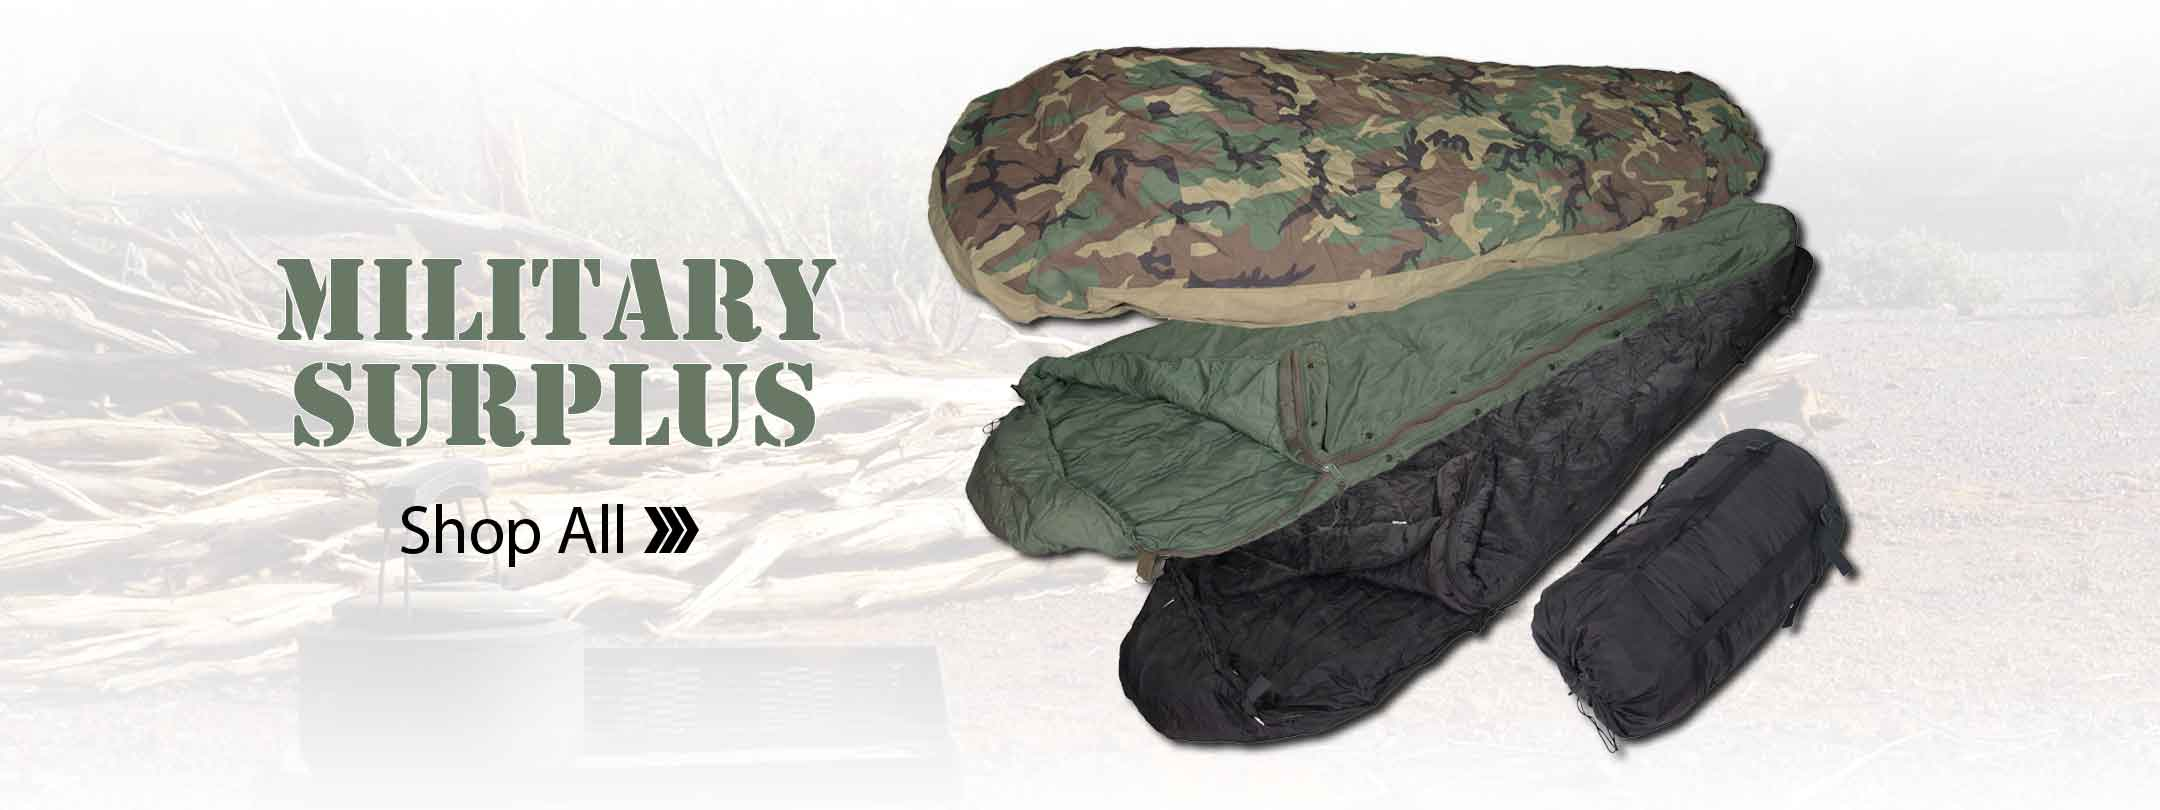 Shop All Military Surplus